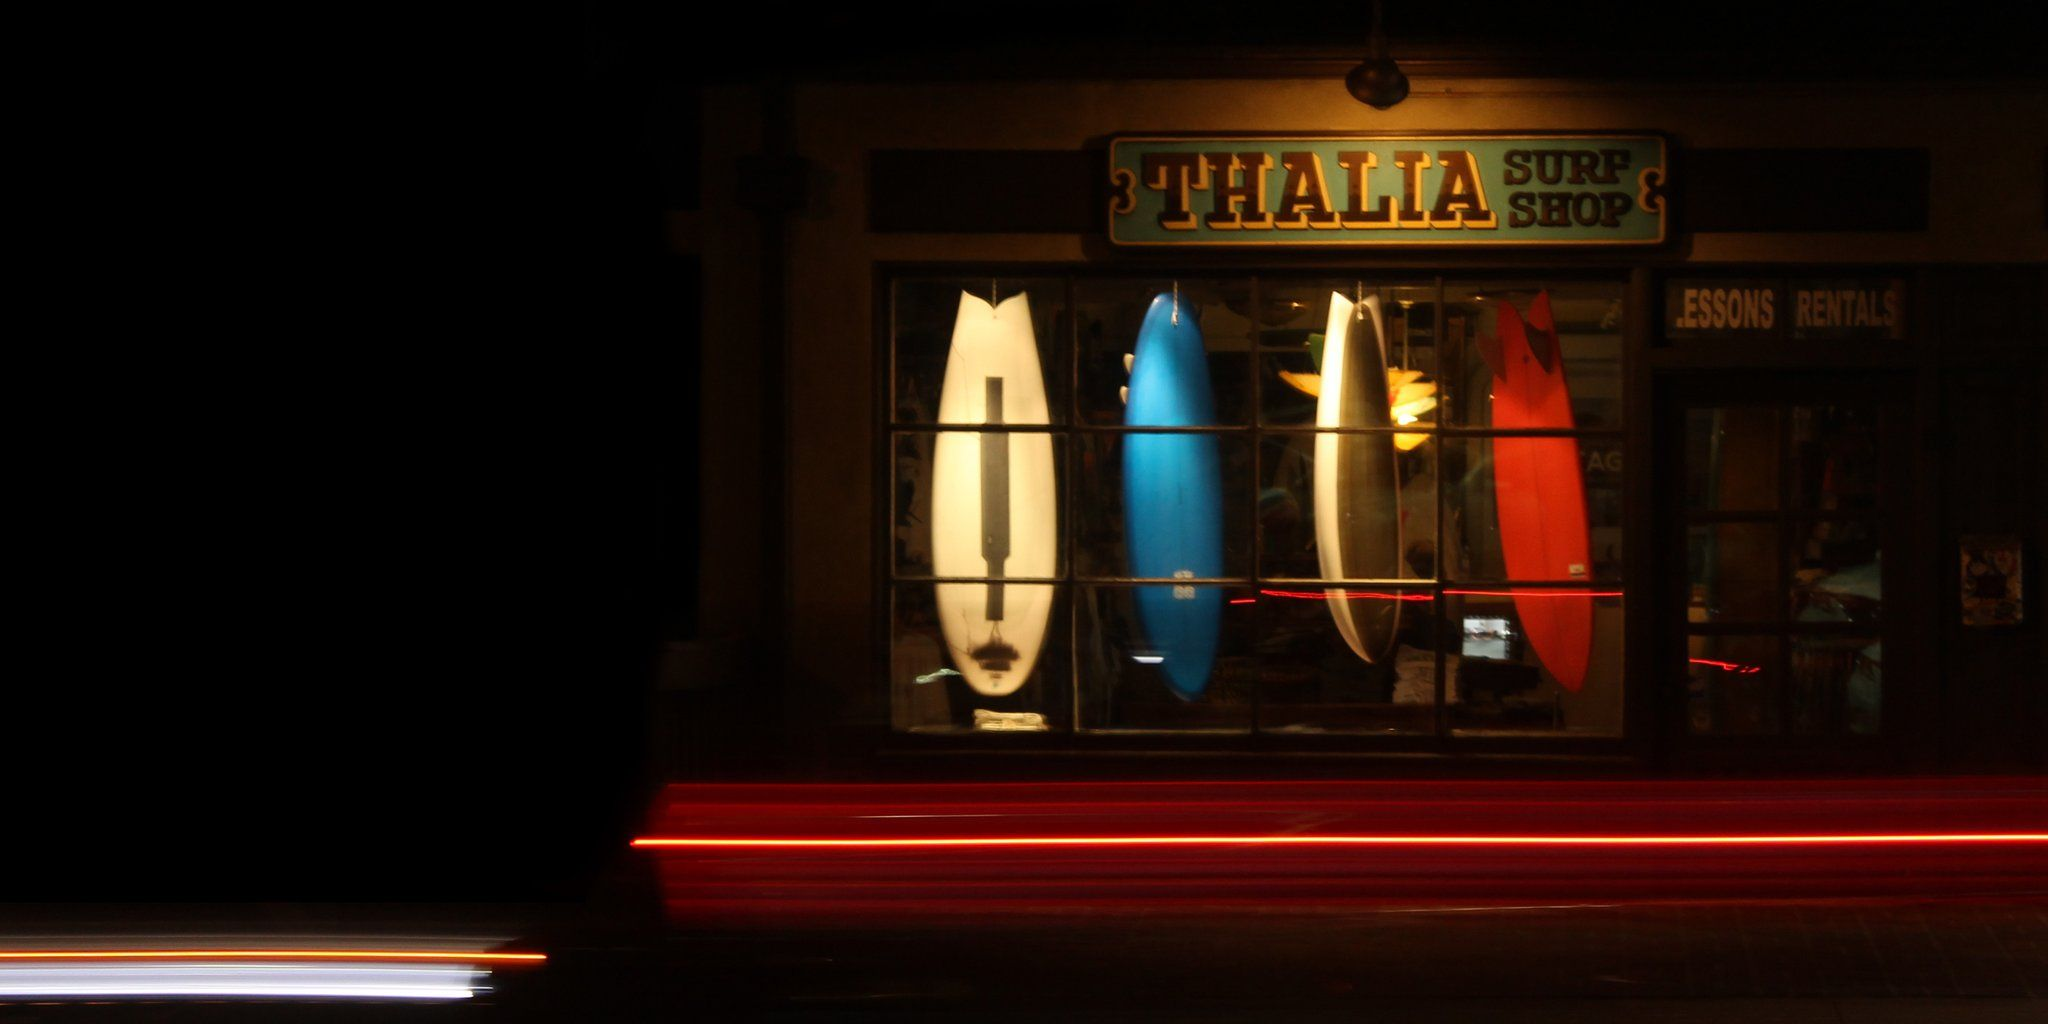 Night time out front of Thalia surf shop. 76099ceaee0